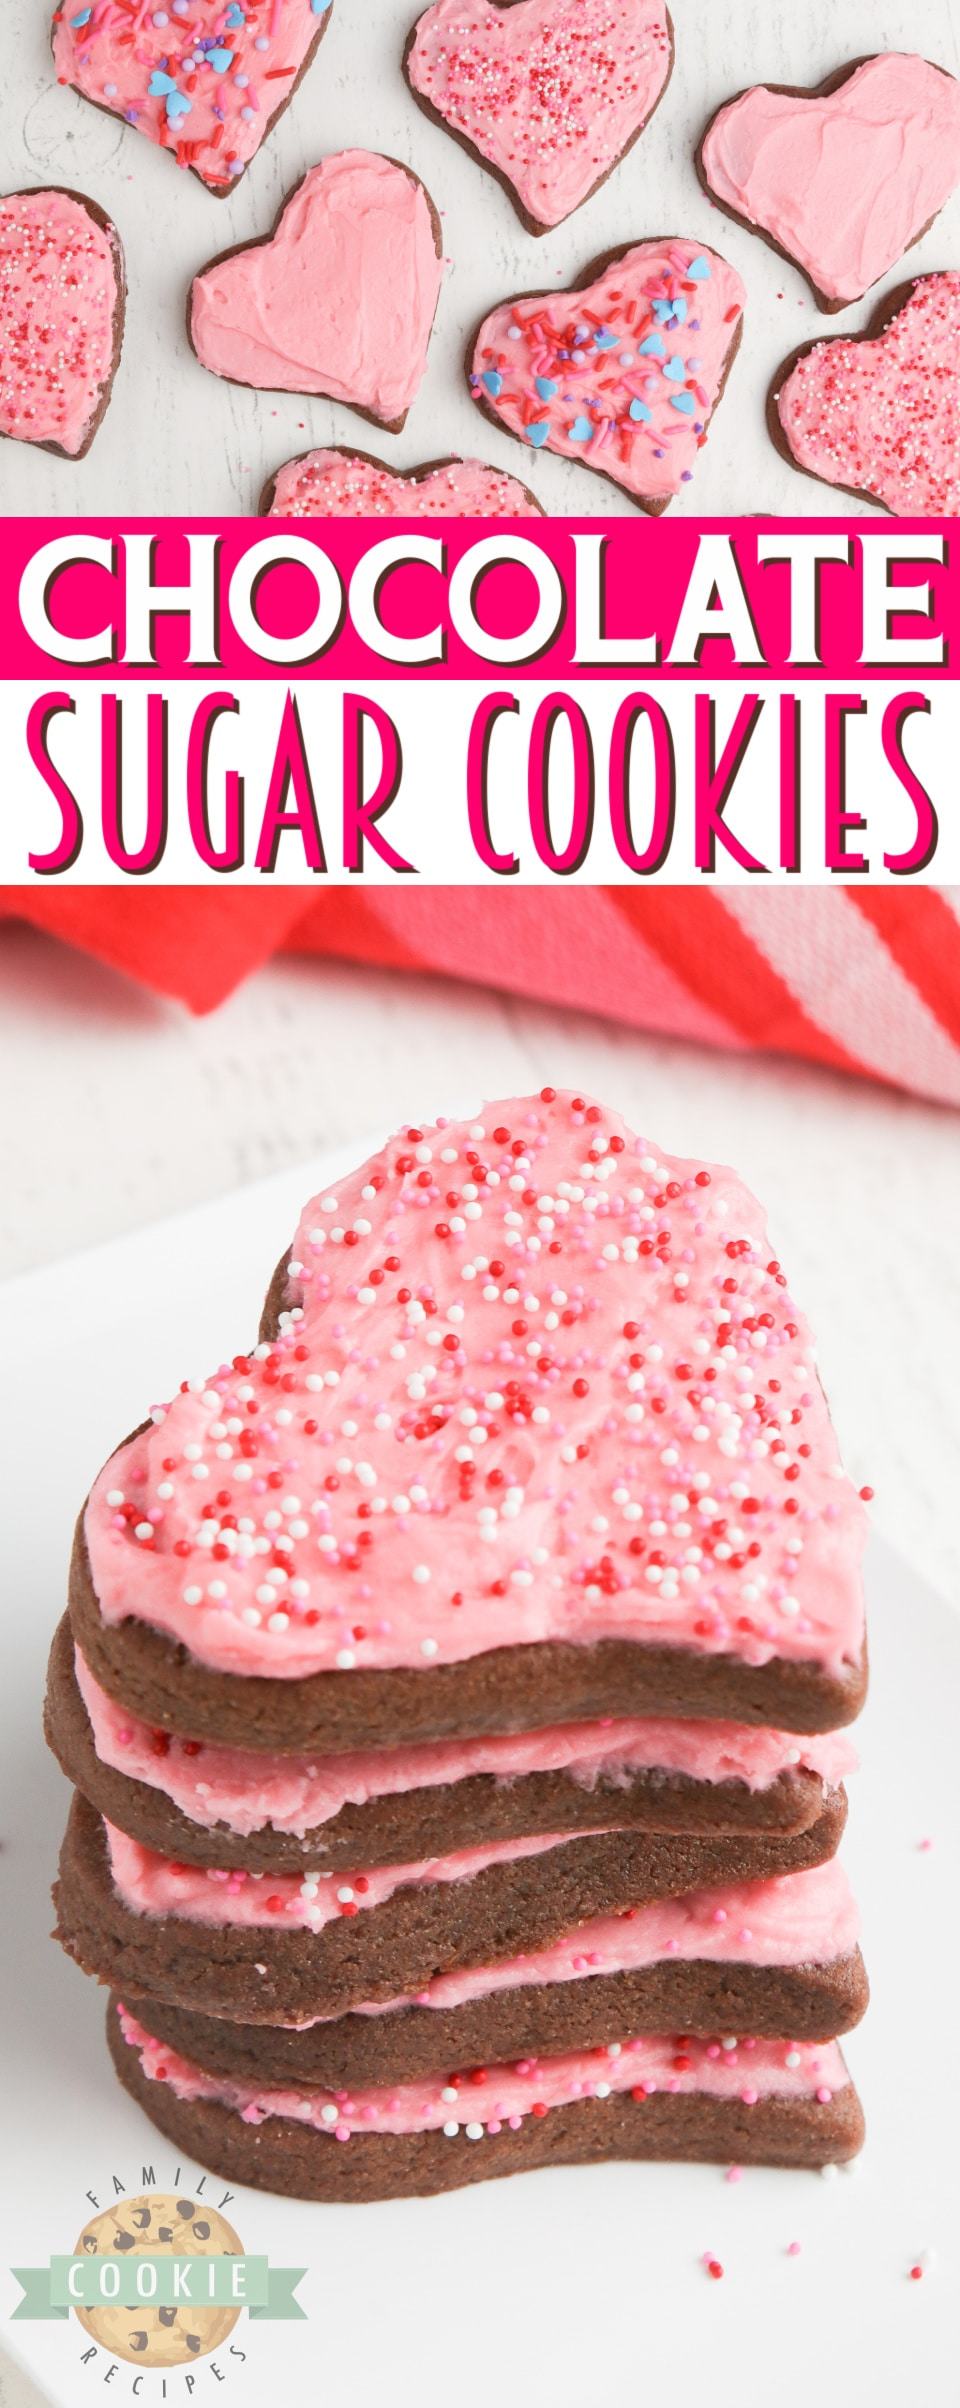 Chocolate Sugar Cookies are soft, rich and perfect for cutting out shapes and making holiday cookies. Easy chocolate sugar cookie recipe that is absolutely delicious! via @familycookierecipes